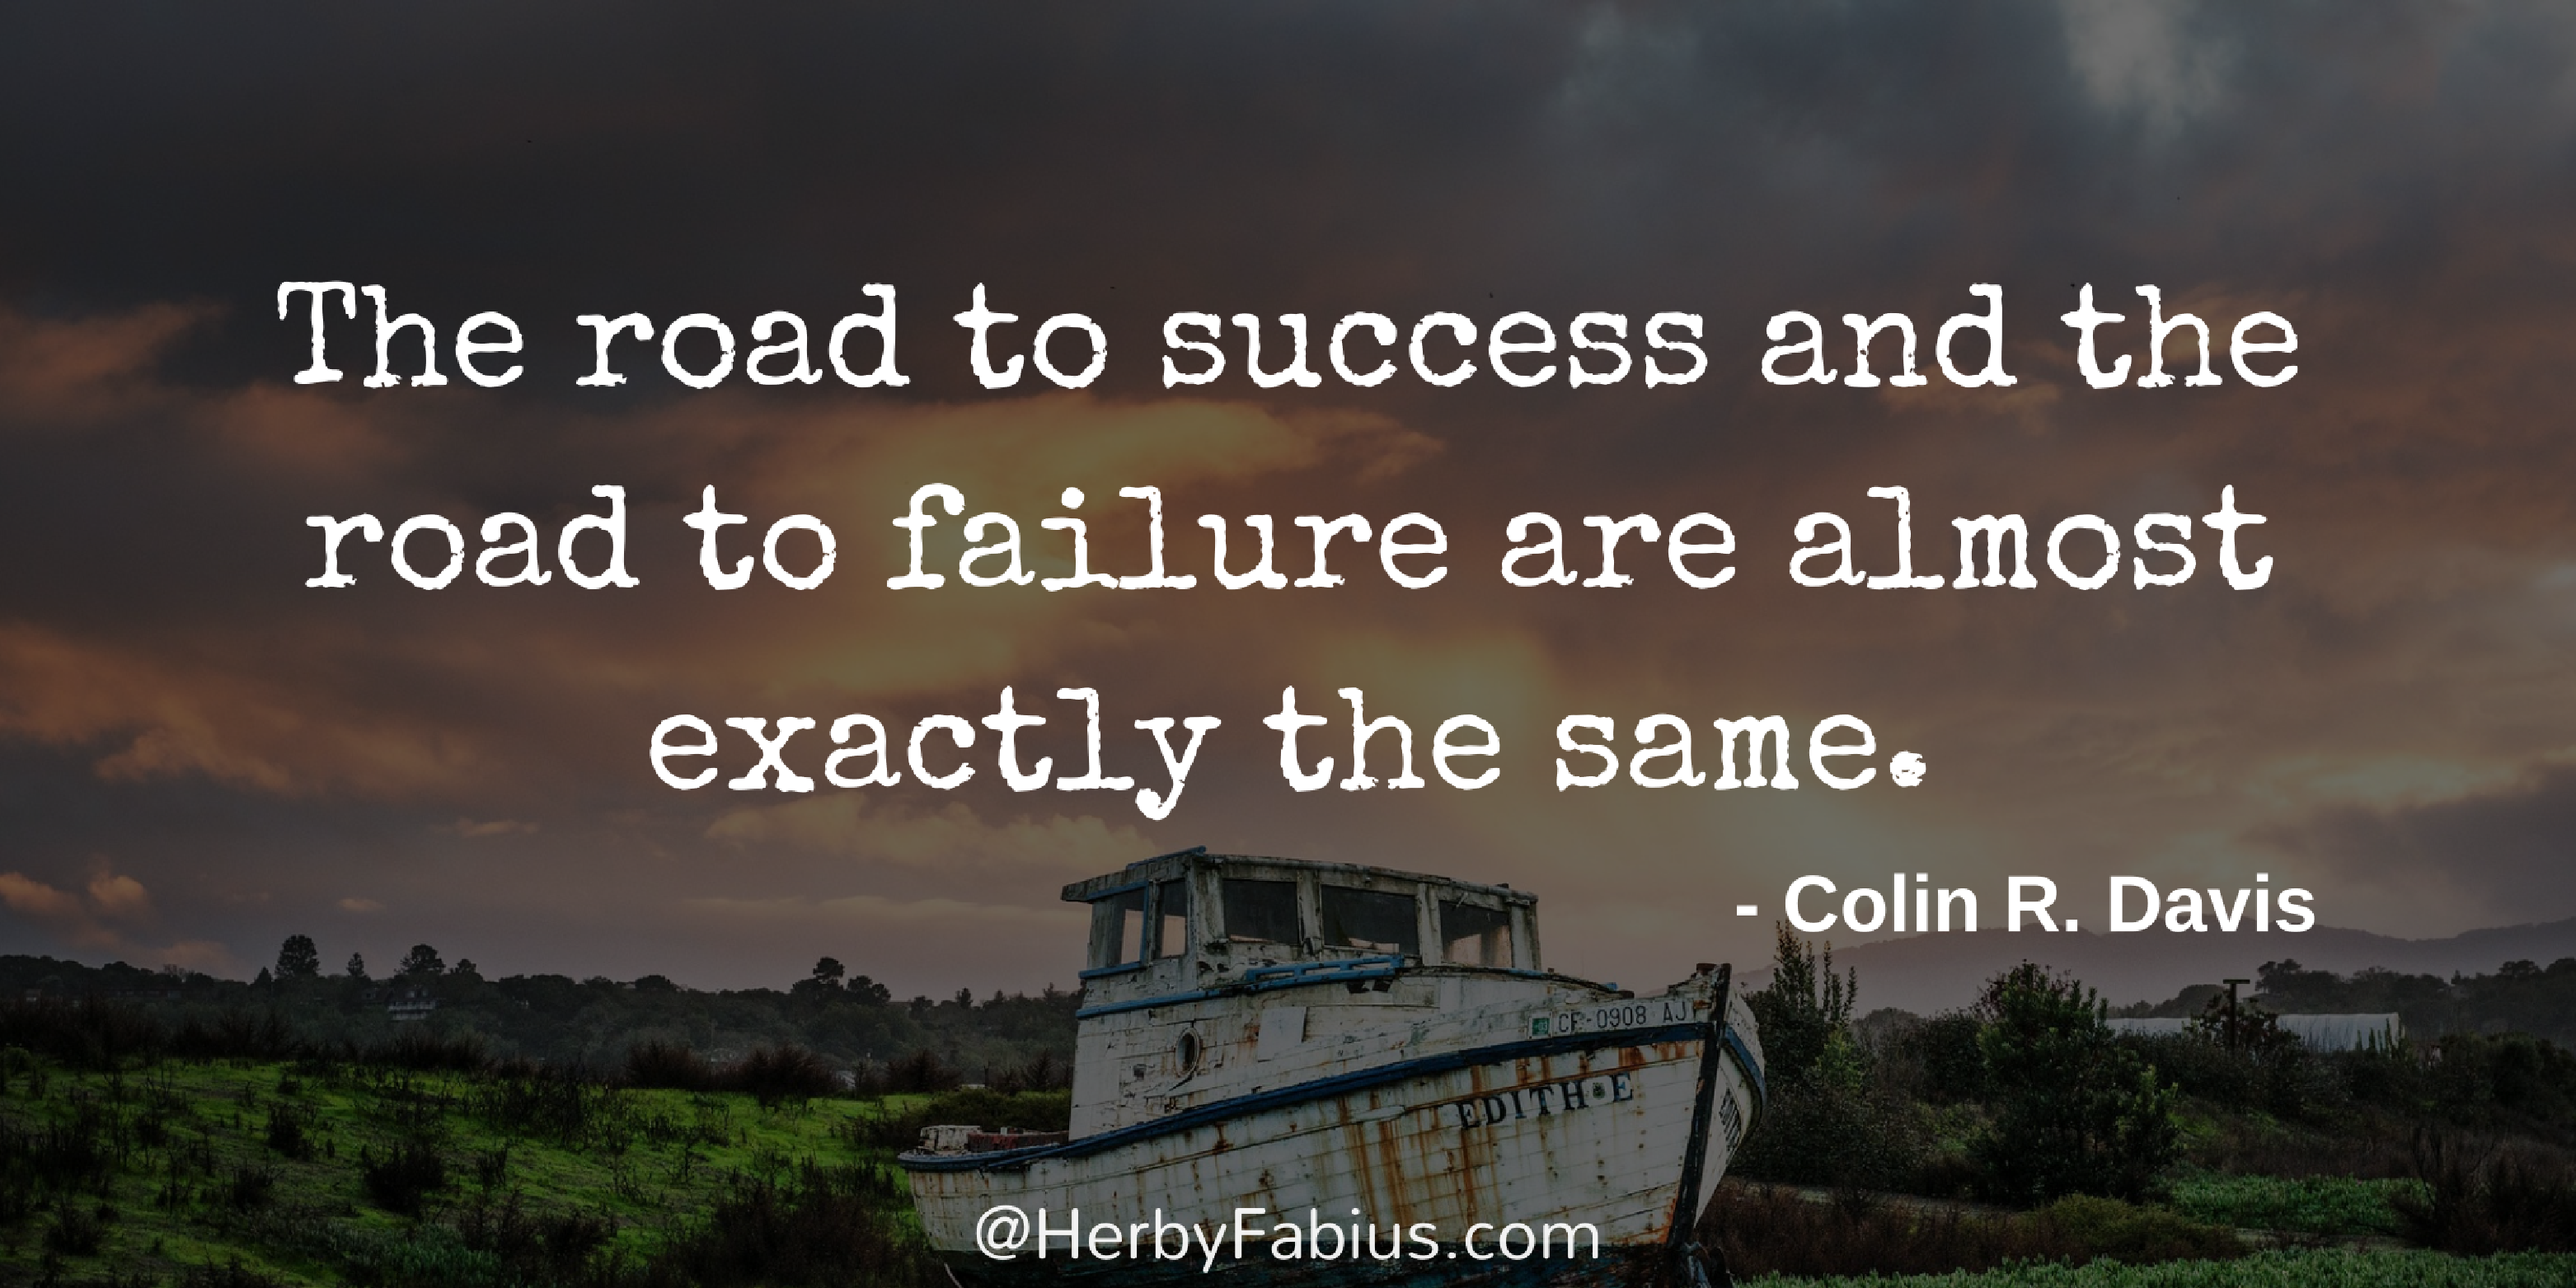 Road To Success Quotes The Road To Success And The Road To Failure Are Almost Exactly The